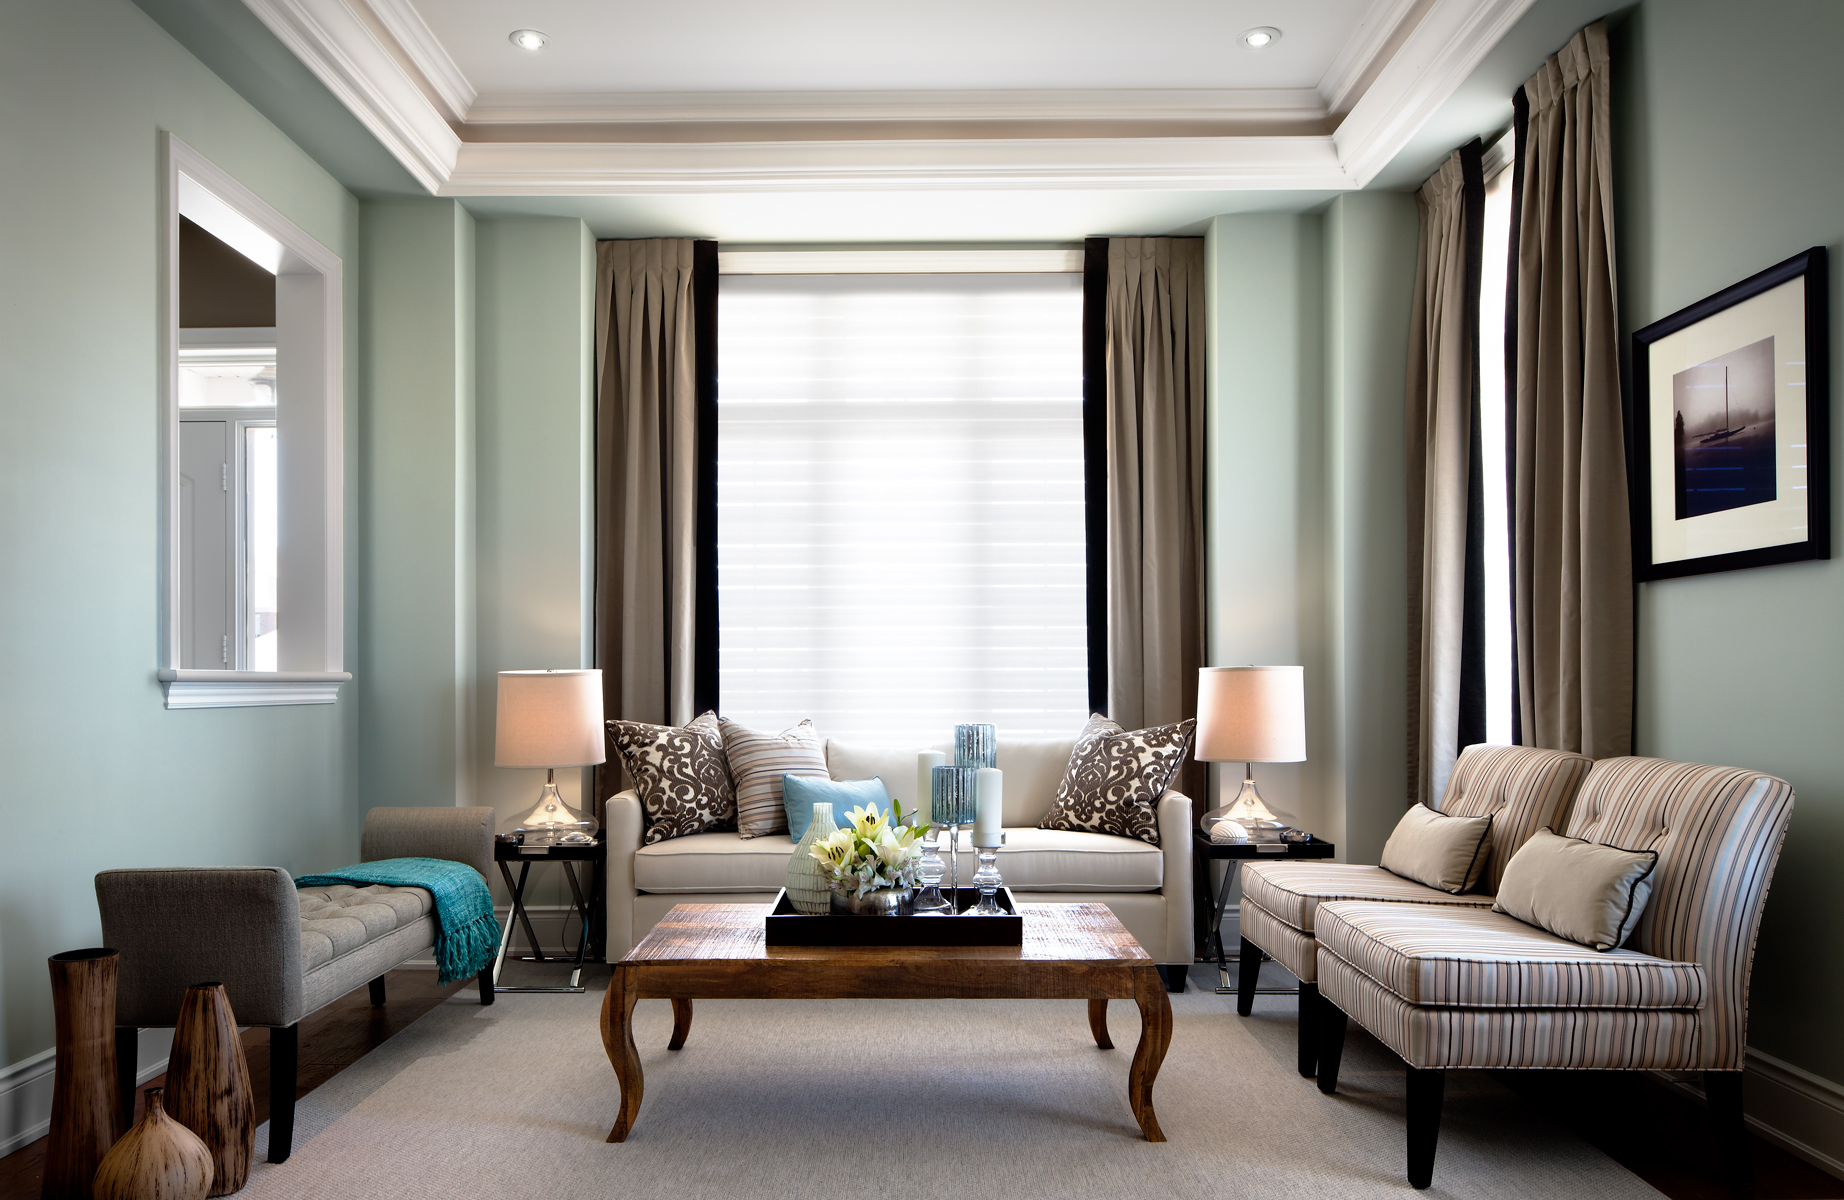 5 Questions To Ask Yourself Before You Purchase A Sofa Jane Lockhart Interior Design